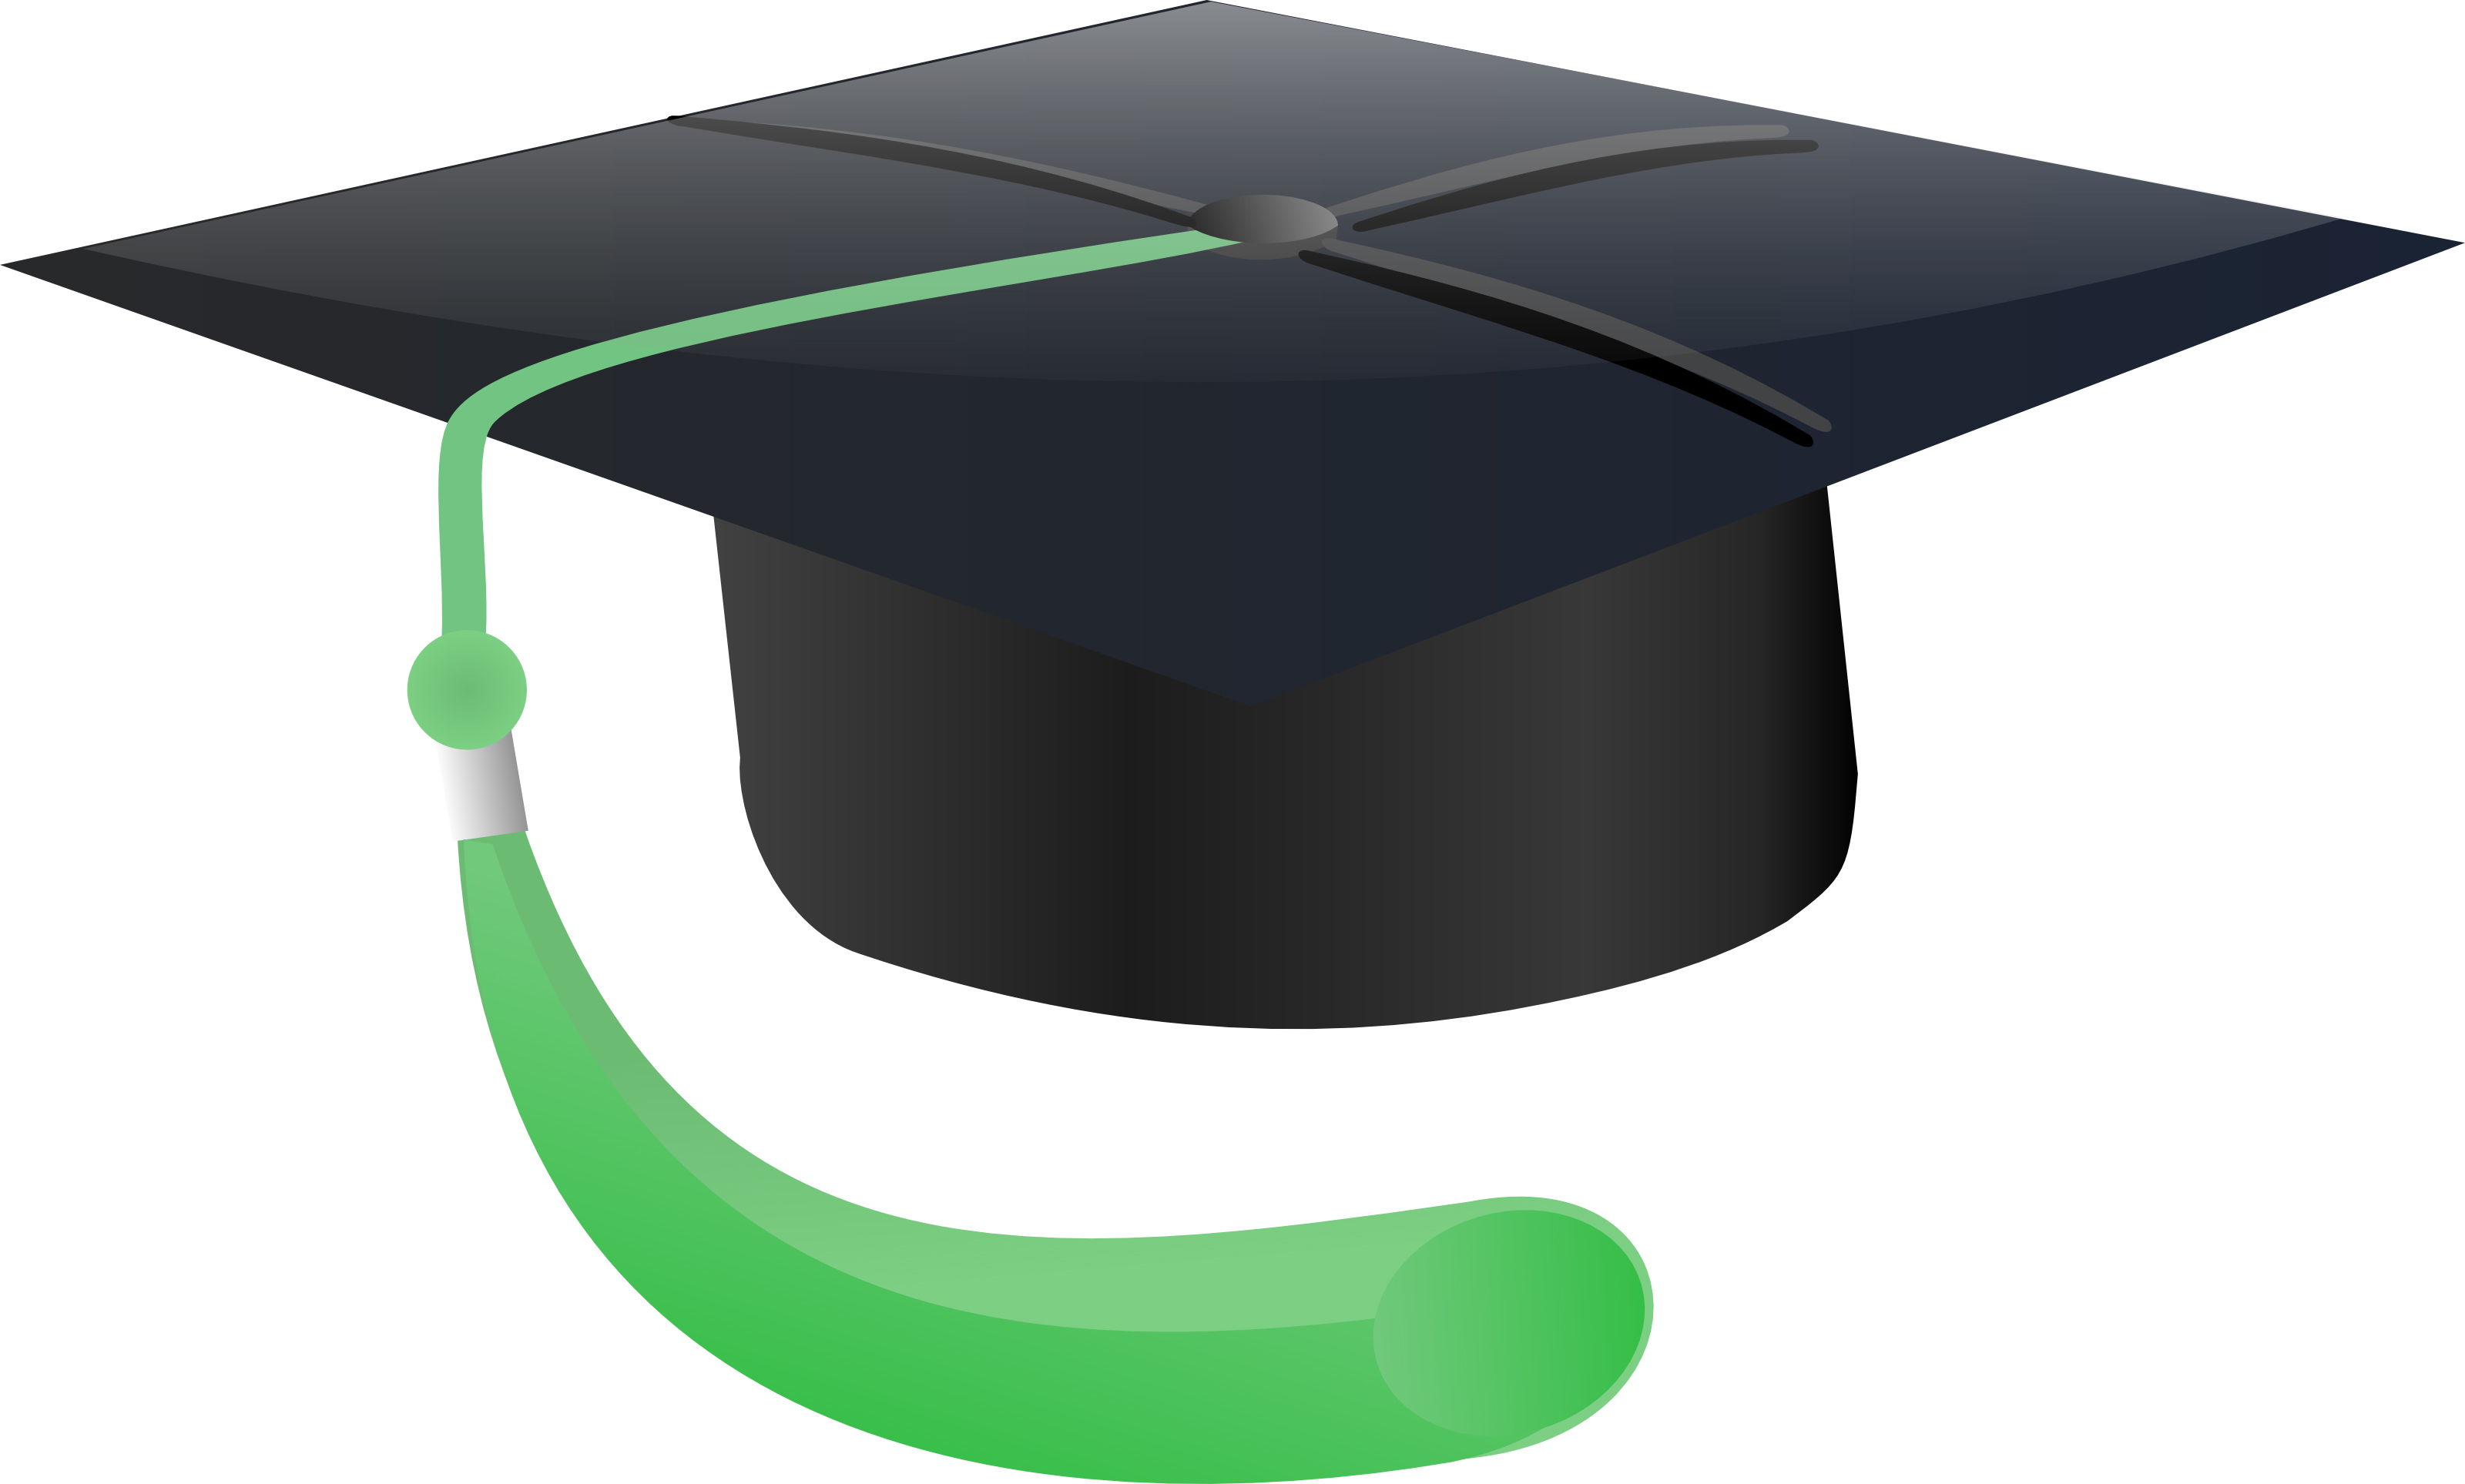 Graduation cap clipart graduation hat vector clipartall